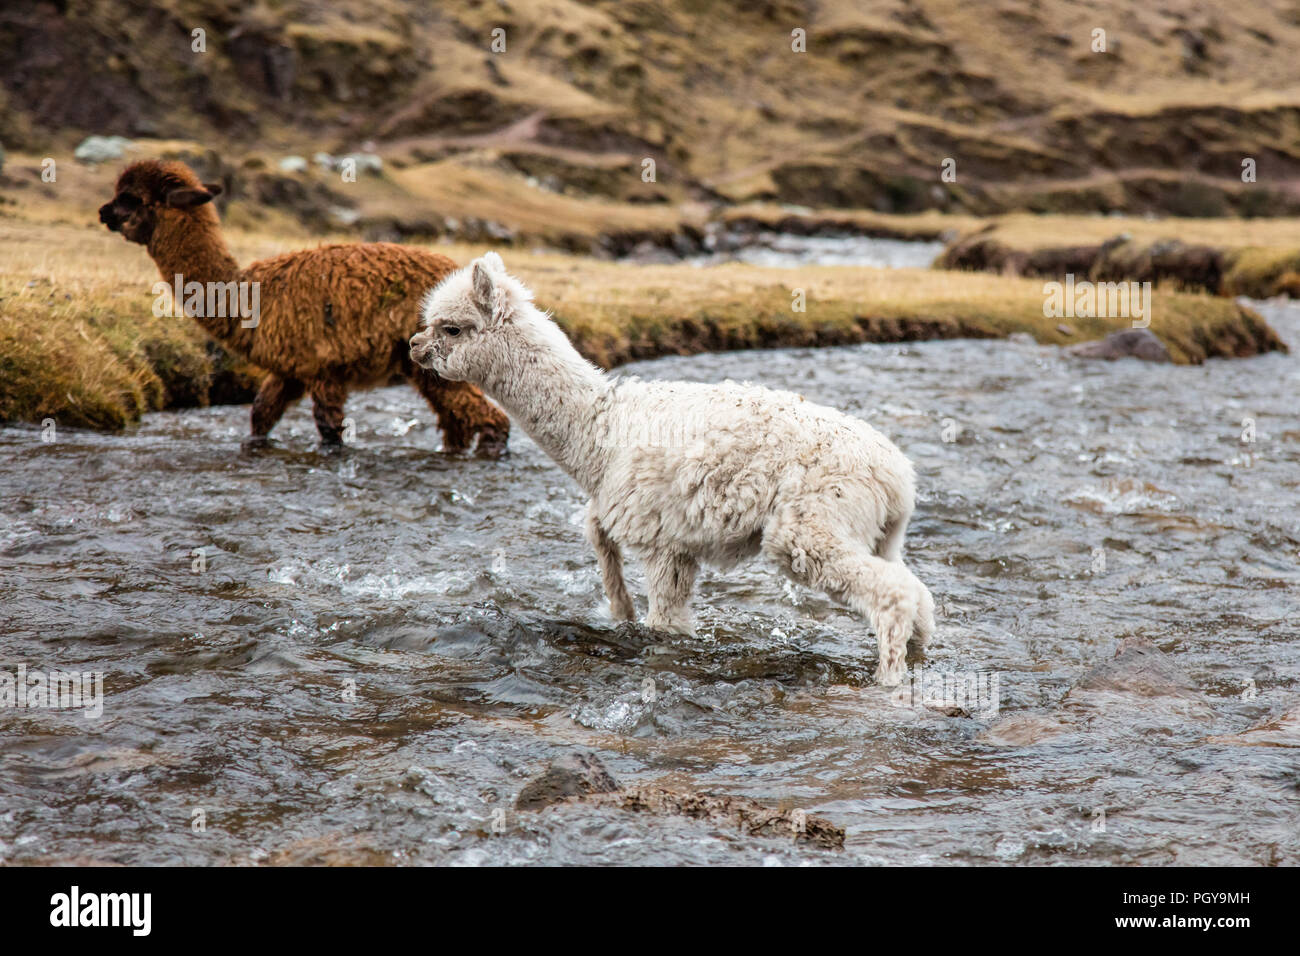 Young Llamas crossing a river near the Quechuan village of Cancha Cancha in the Lares Valley, along the Lares Trek, near Machu Picchu, Peru Stock Photo